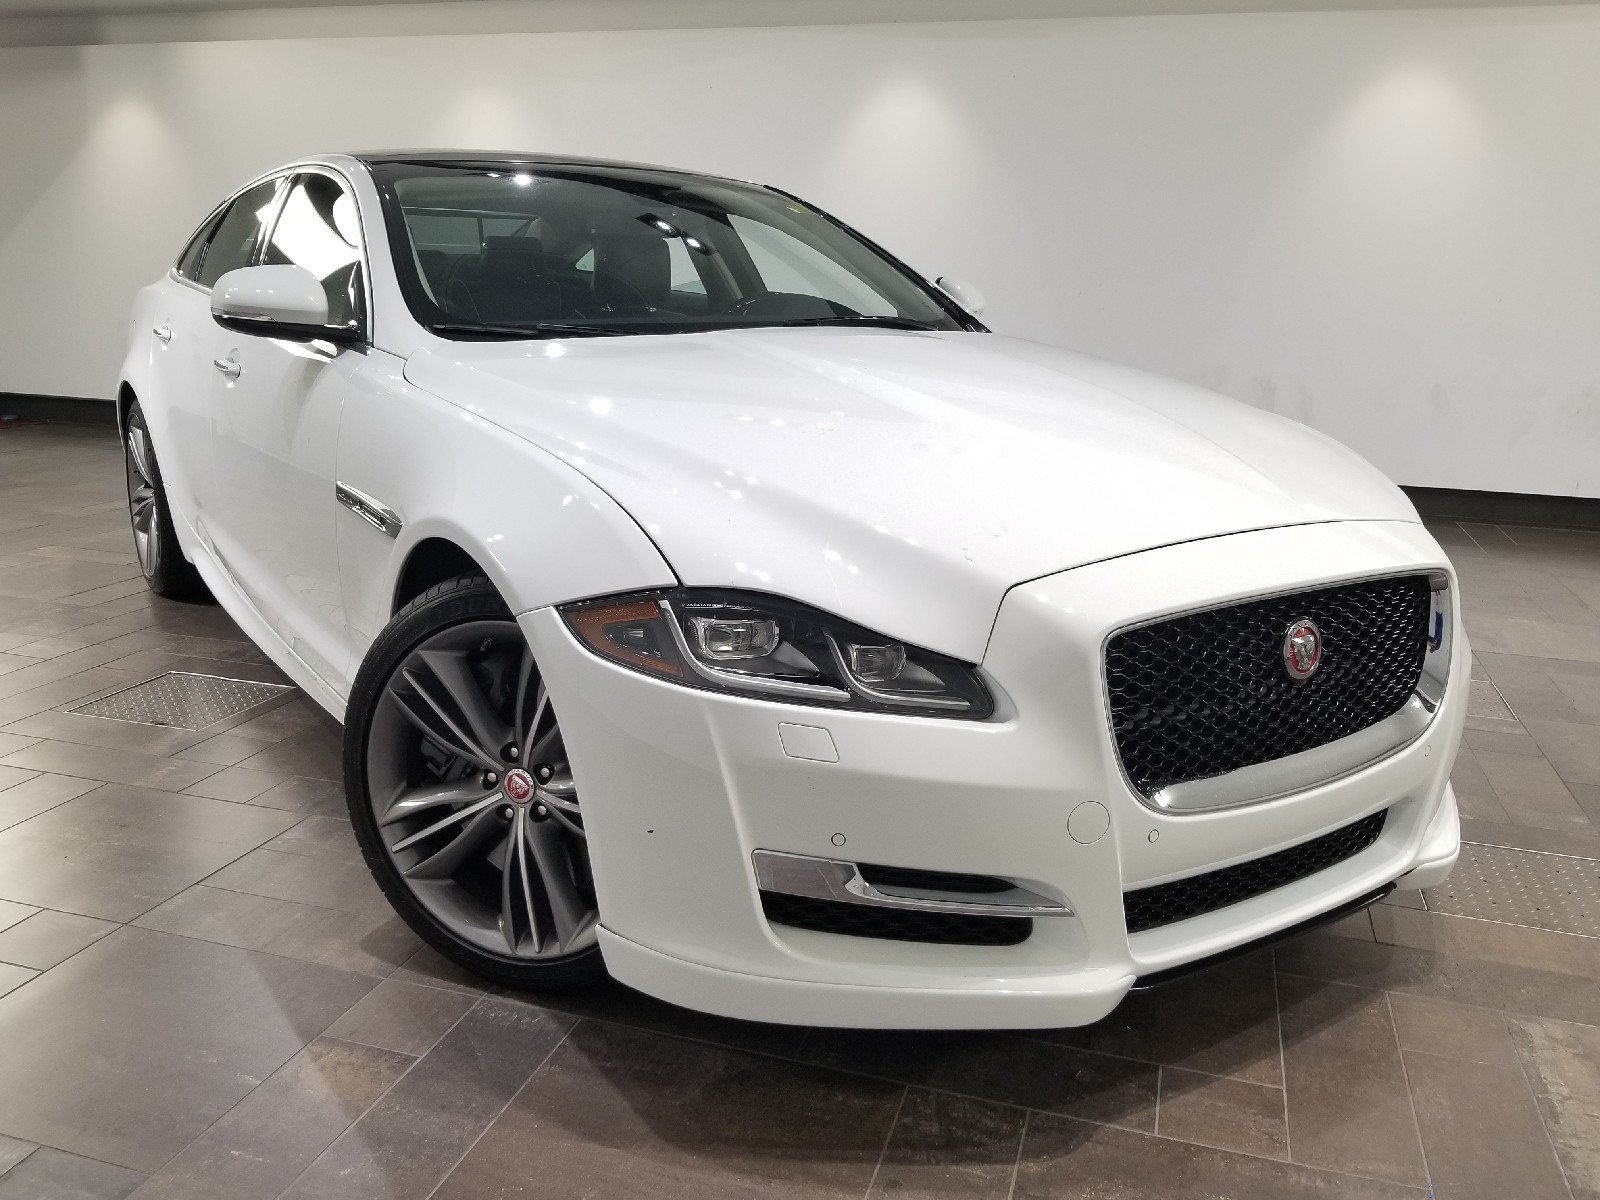 Certified Pre-Owned 2016 Jaguar XJ Supercharged